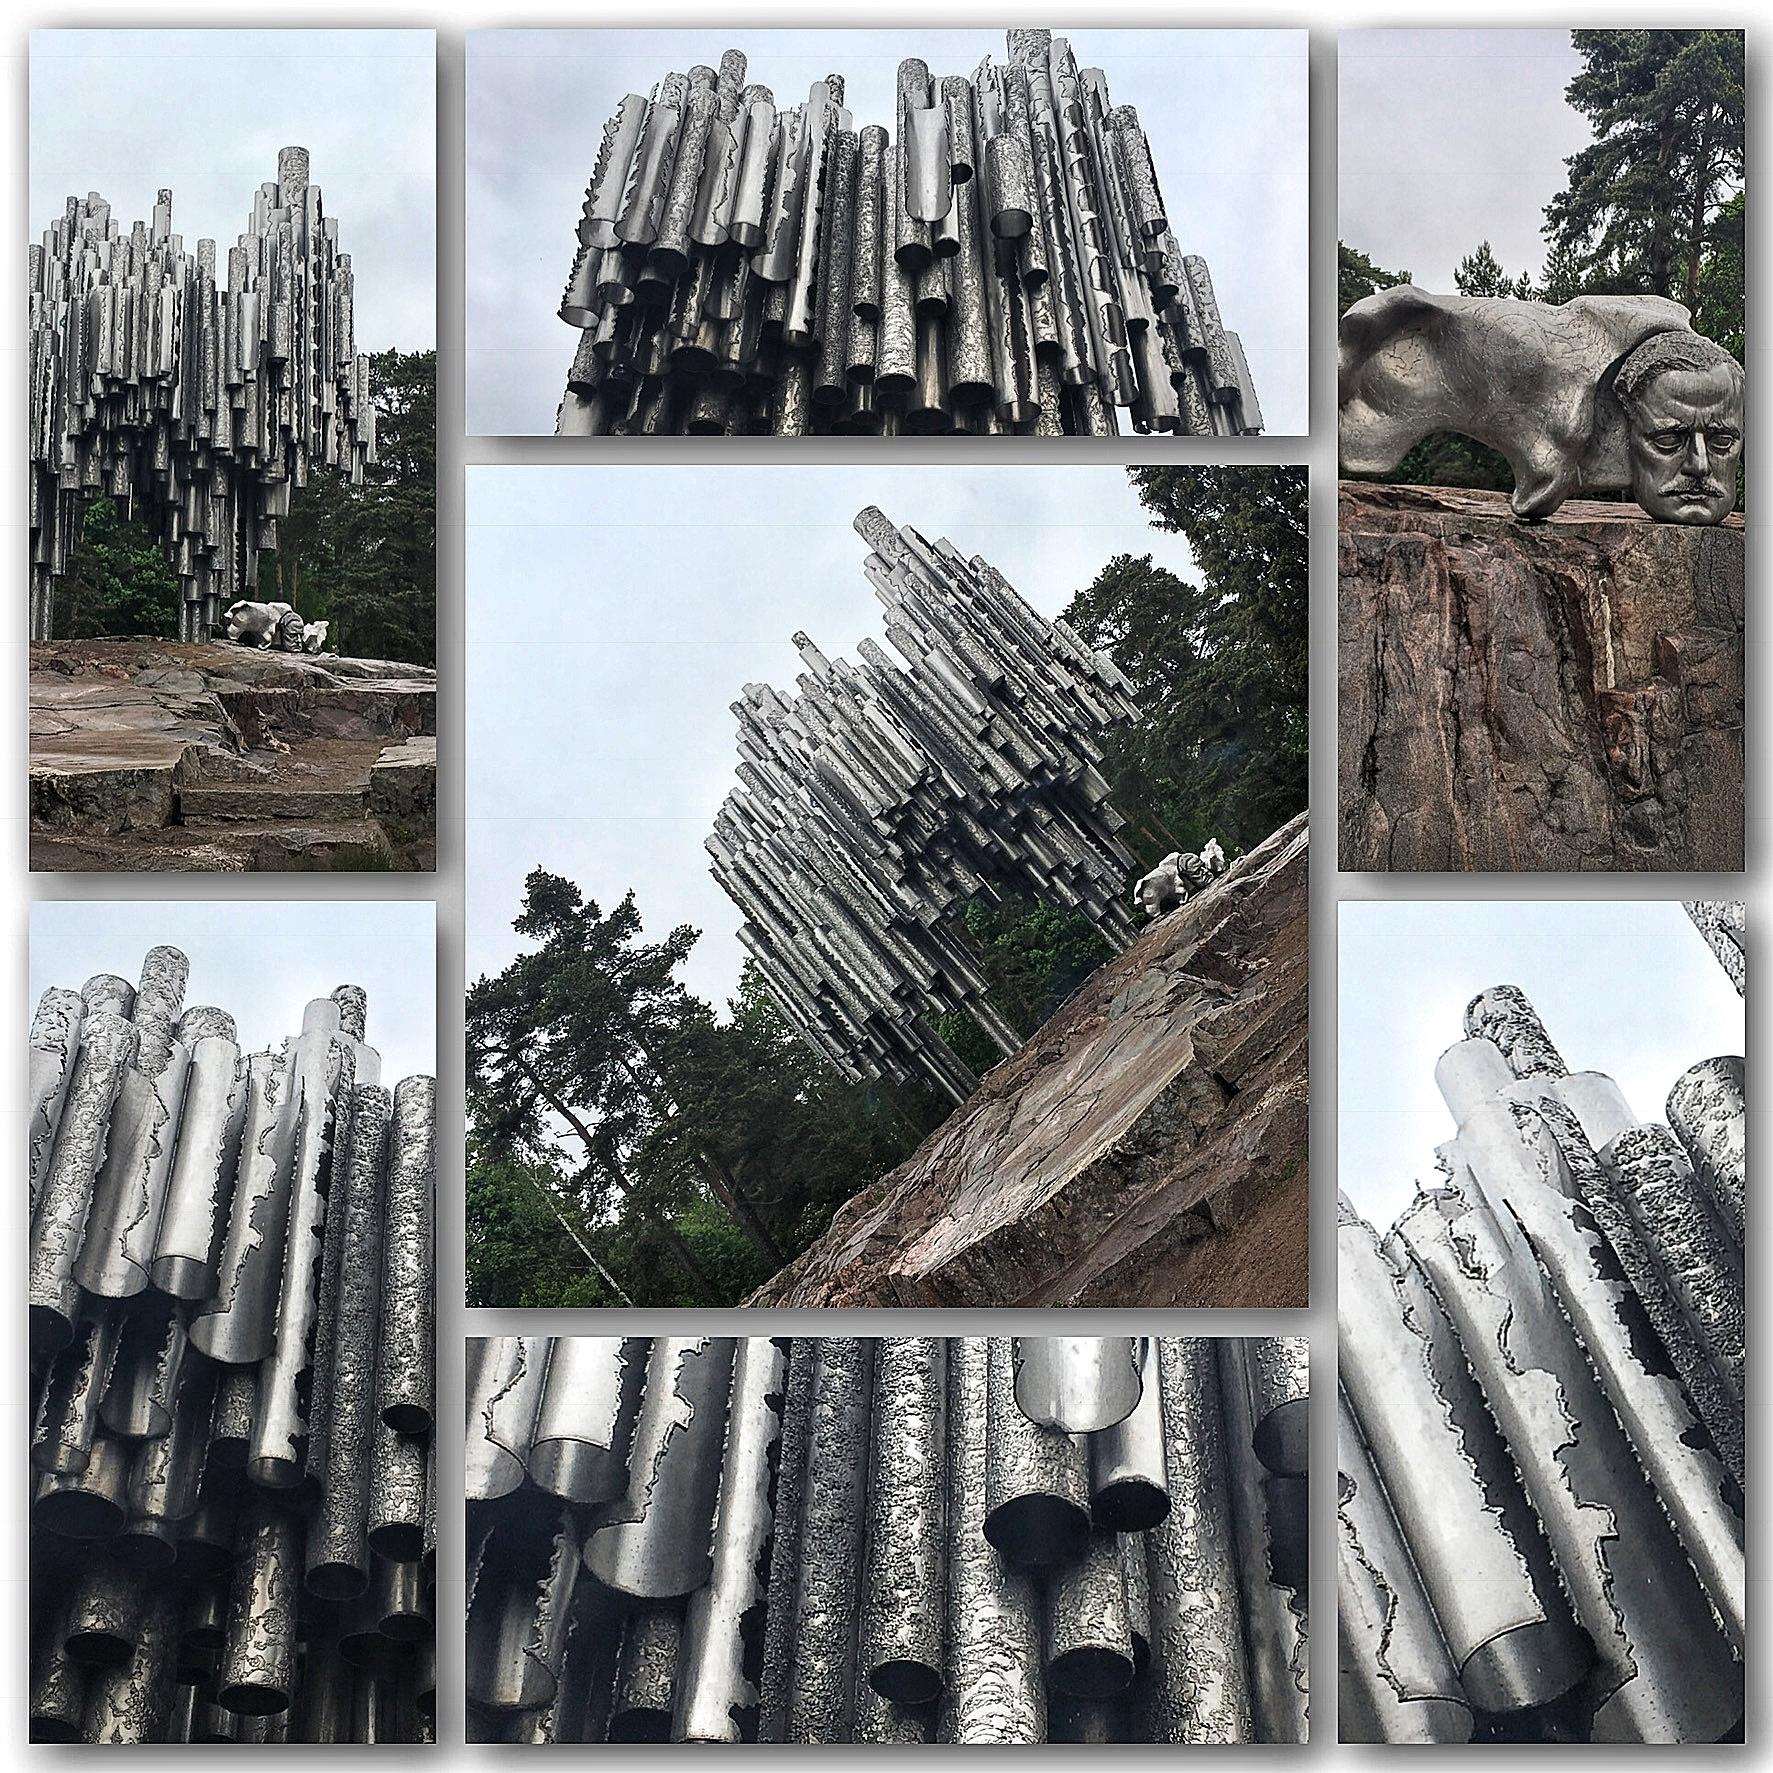 Am Sibelius Monument